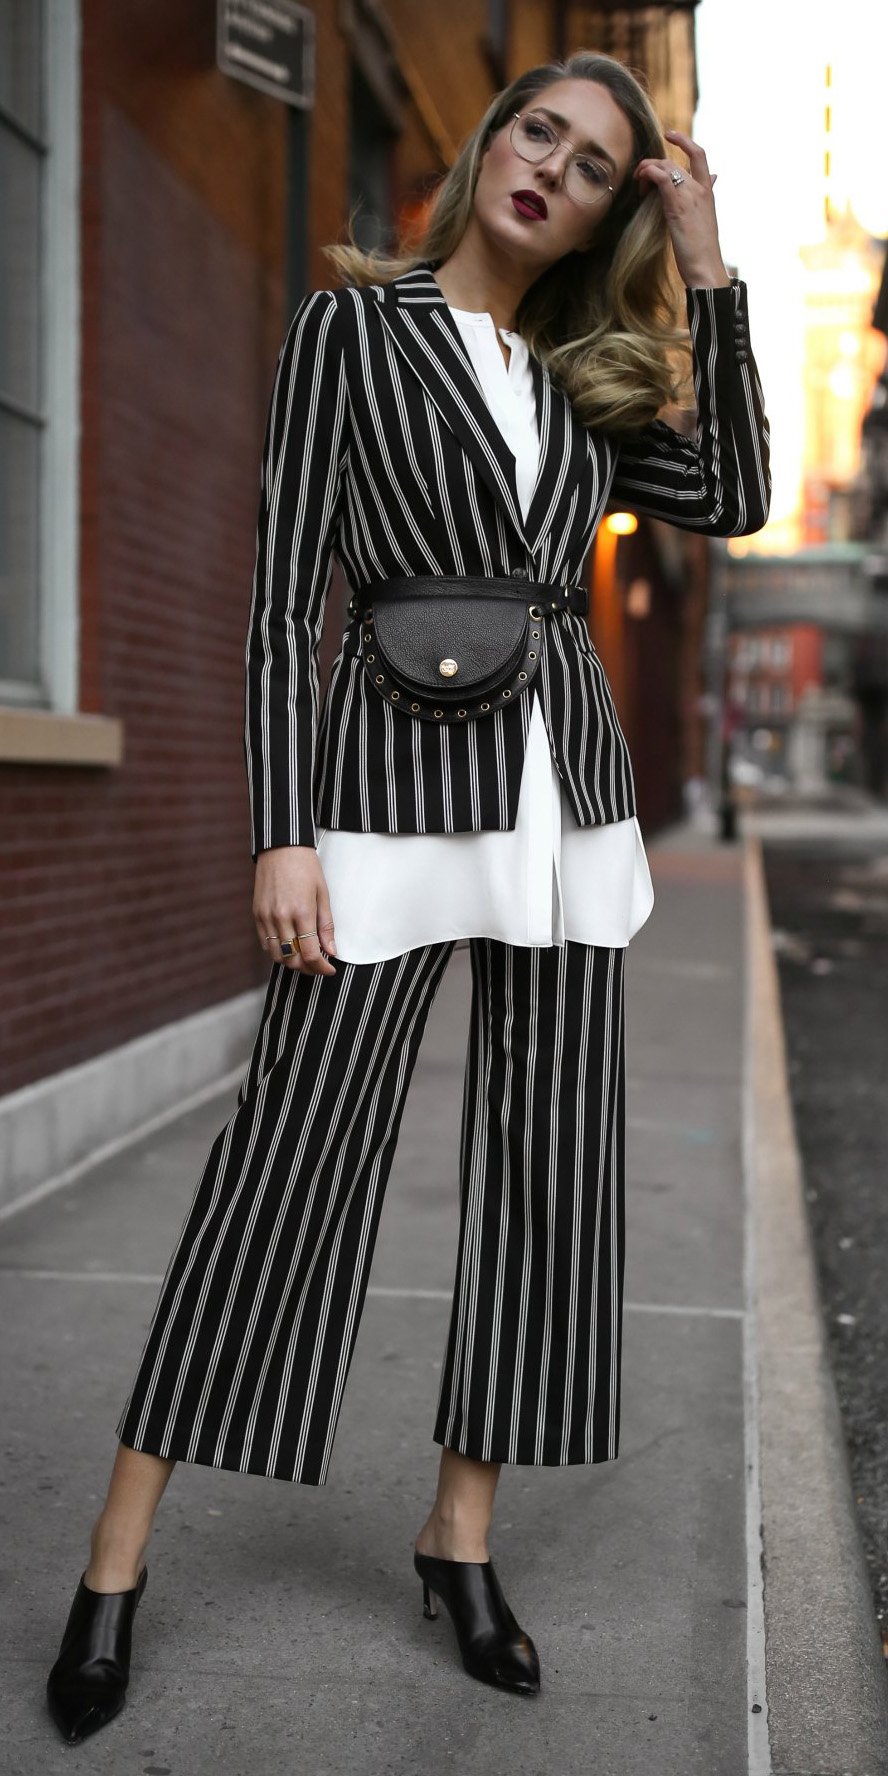 black-culottes-pants-pinstripe-suit-white-collared-shirt-black-bag-fannypack-black-shoe-booties-blonde-black-jacket-blazer-fall-winter-lunch.jpg